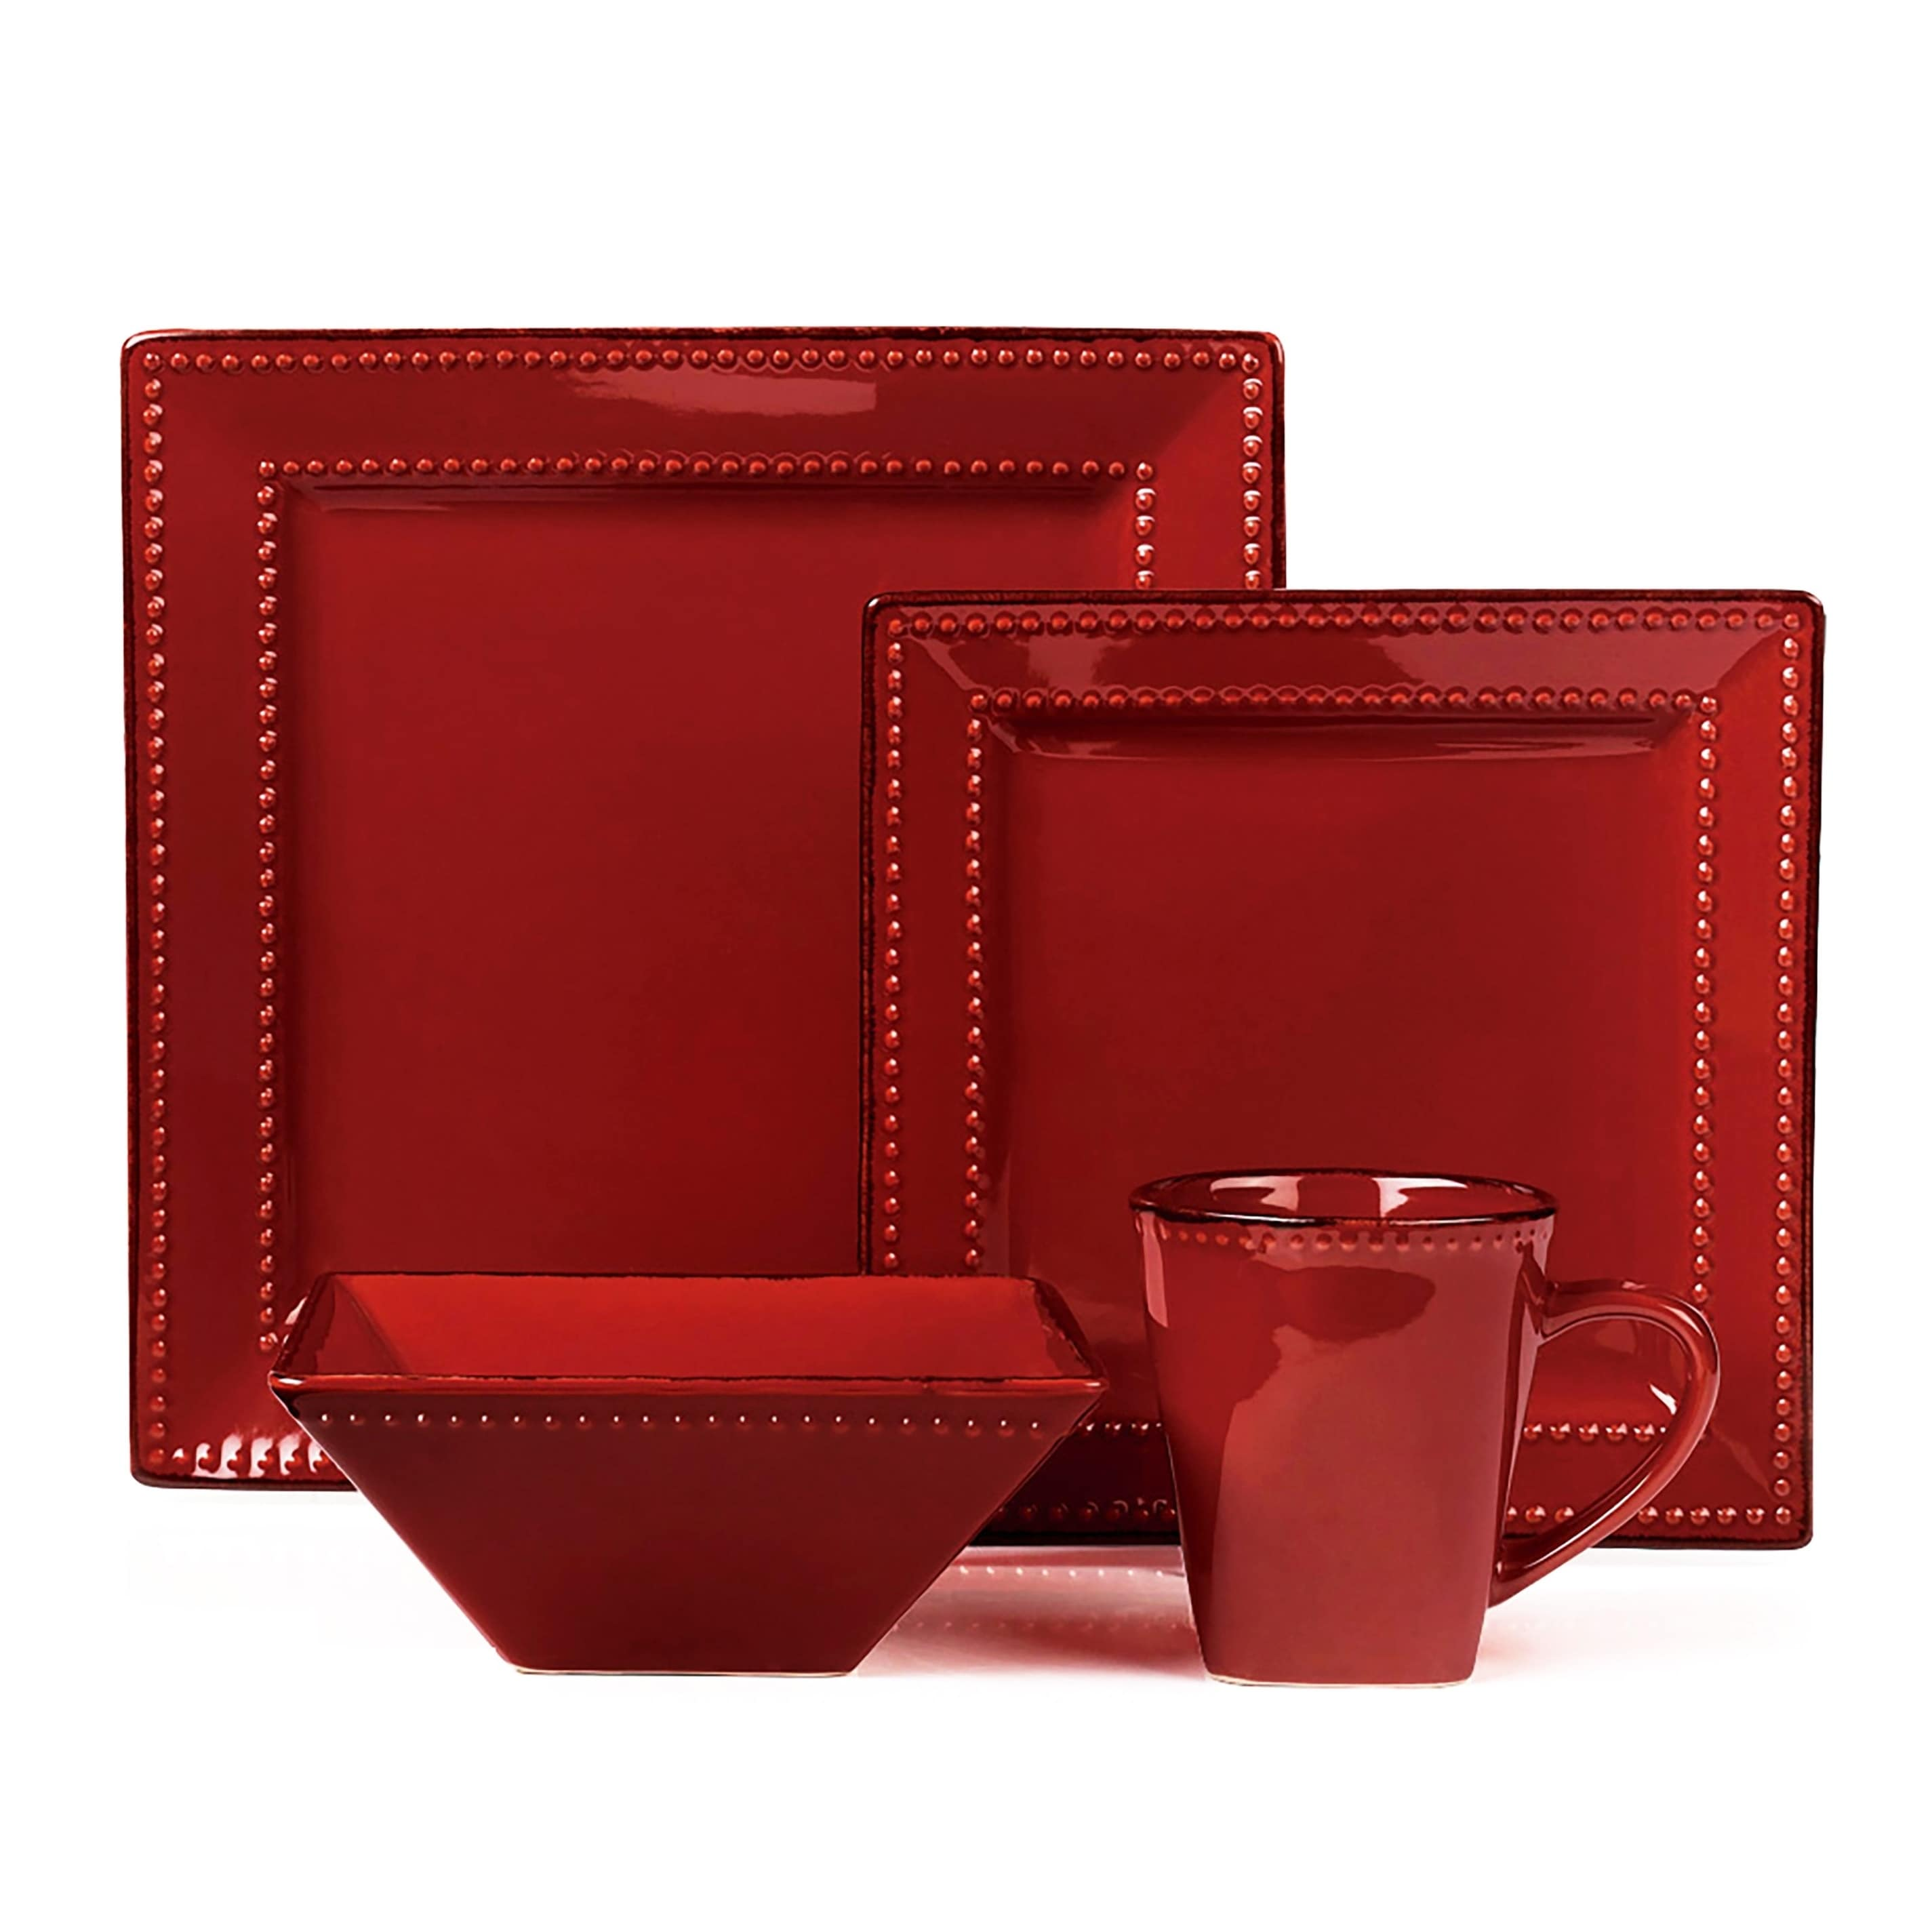 16 Piece Square Beaded Stoneware Dinnerware by Lorren Home Trends Red - Free Shipping Today - Overstock - 24711866  sc 1 st  Overstock.com & 16 Piece Square Beaded Stoneware Dinnerware by Lorren Home Trends ...